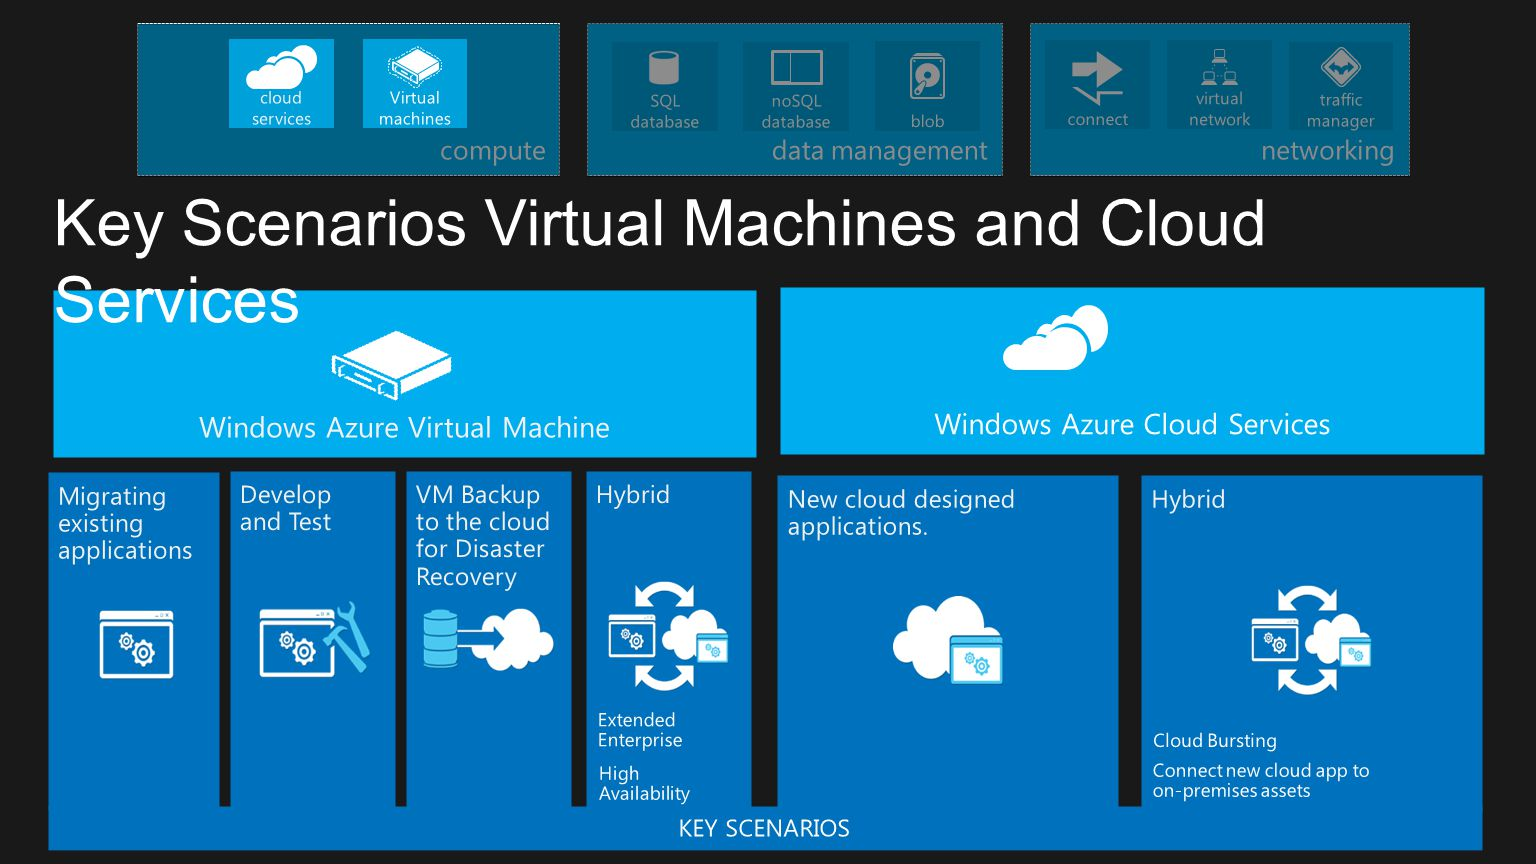 Key Scenarios Virtual Machines and Cloud Services